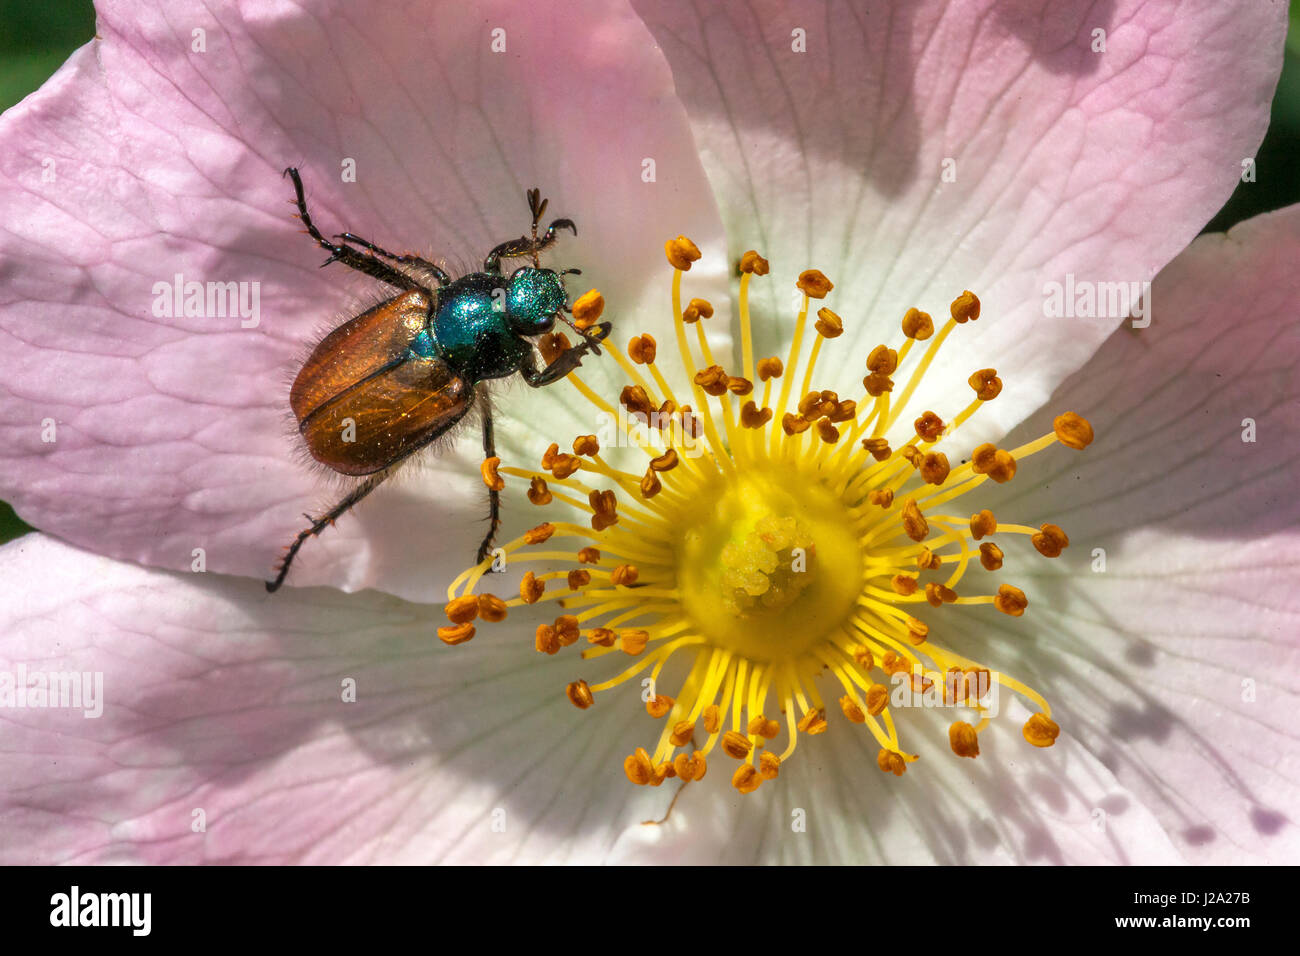 Chaver Beetle on dog rose in a thicket in Deventer. - Stock Image